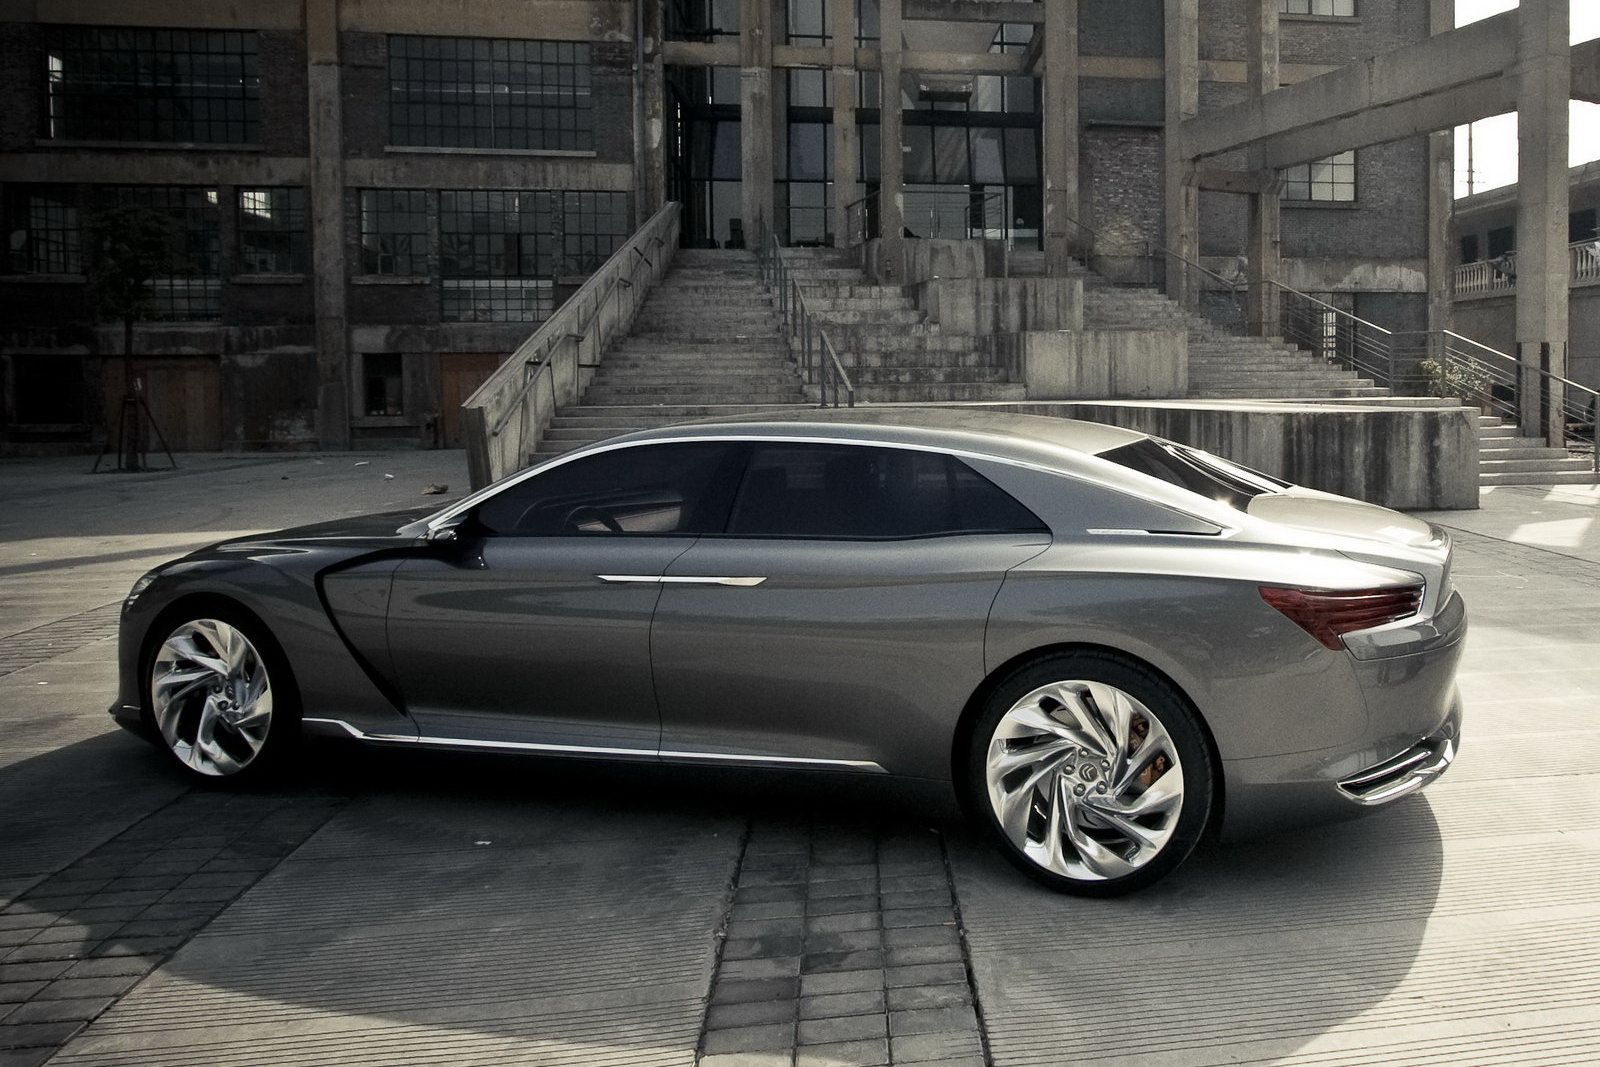 Citroen Could Ressurect C6 Name For China Citroen Ds9 Luxury Hybrid Cars Citroen